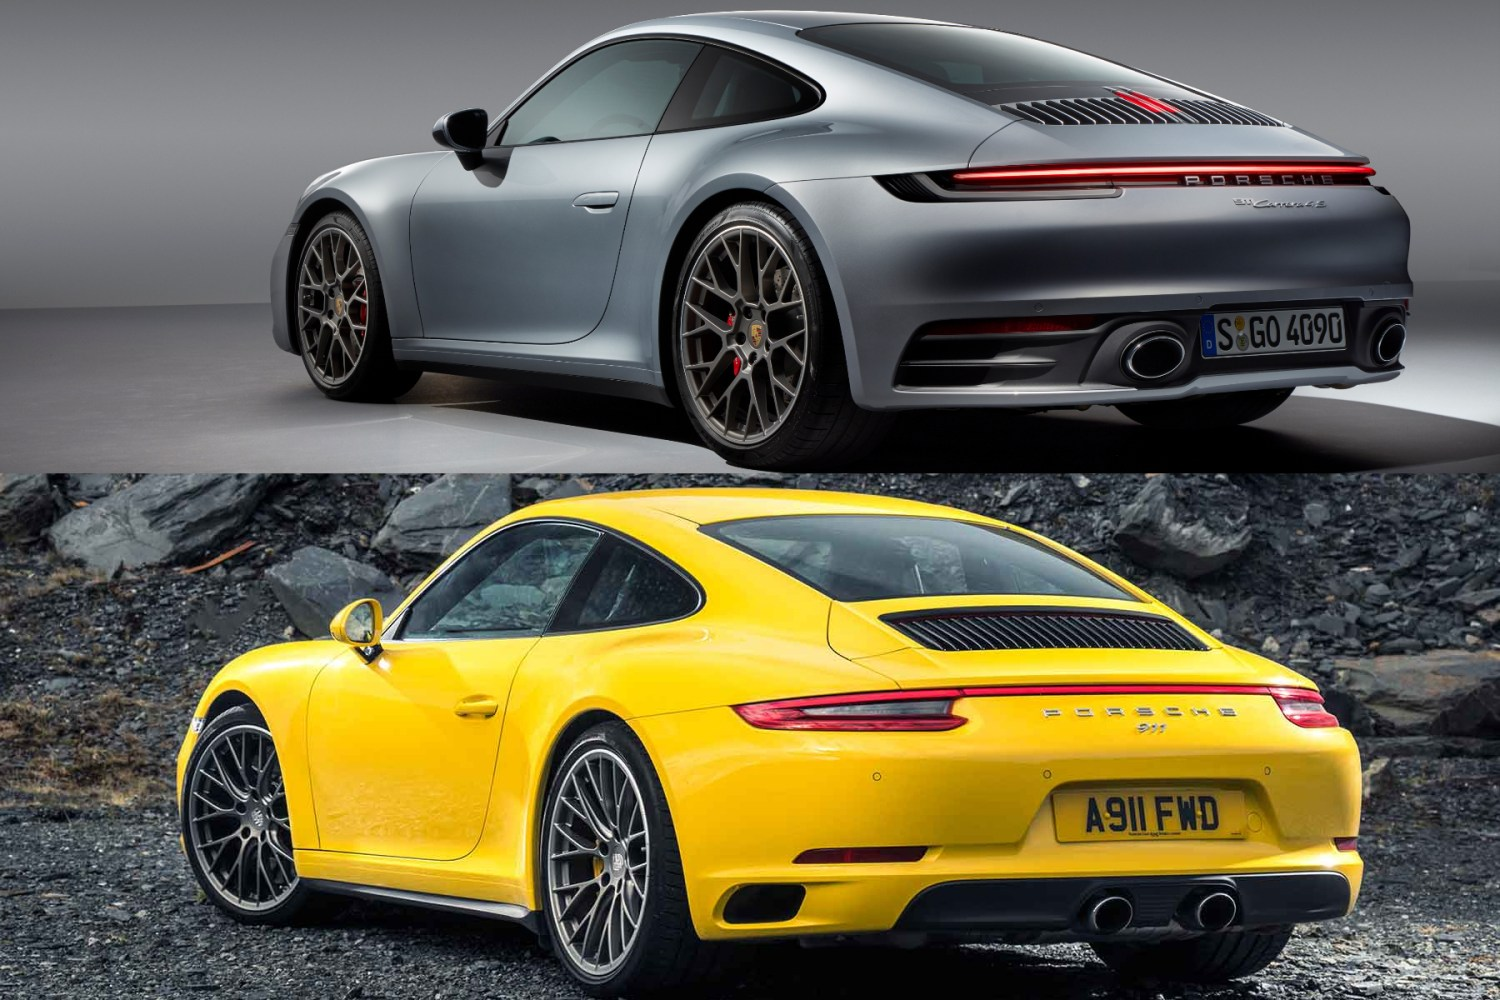 New Porsche 911 >> Spot The Difference Porsche 911 New And Old Compared